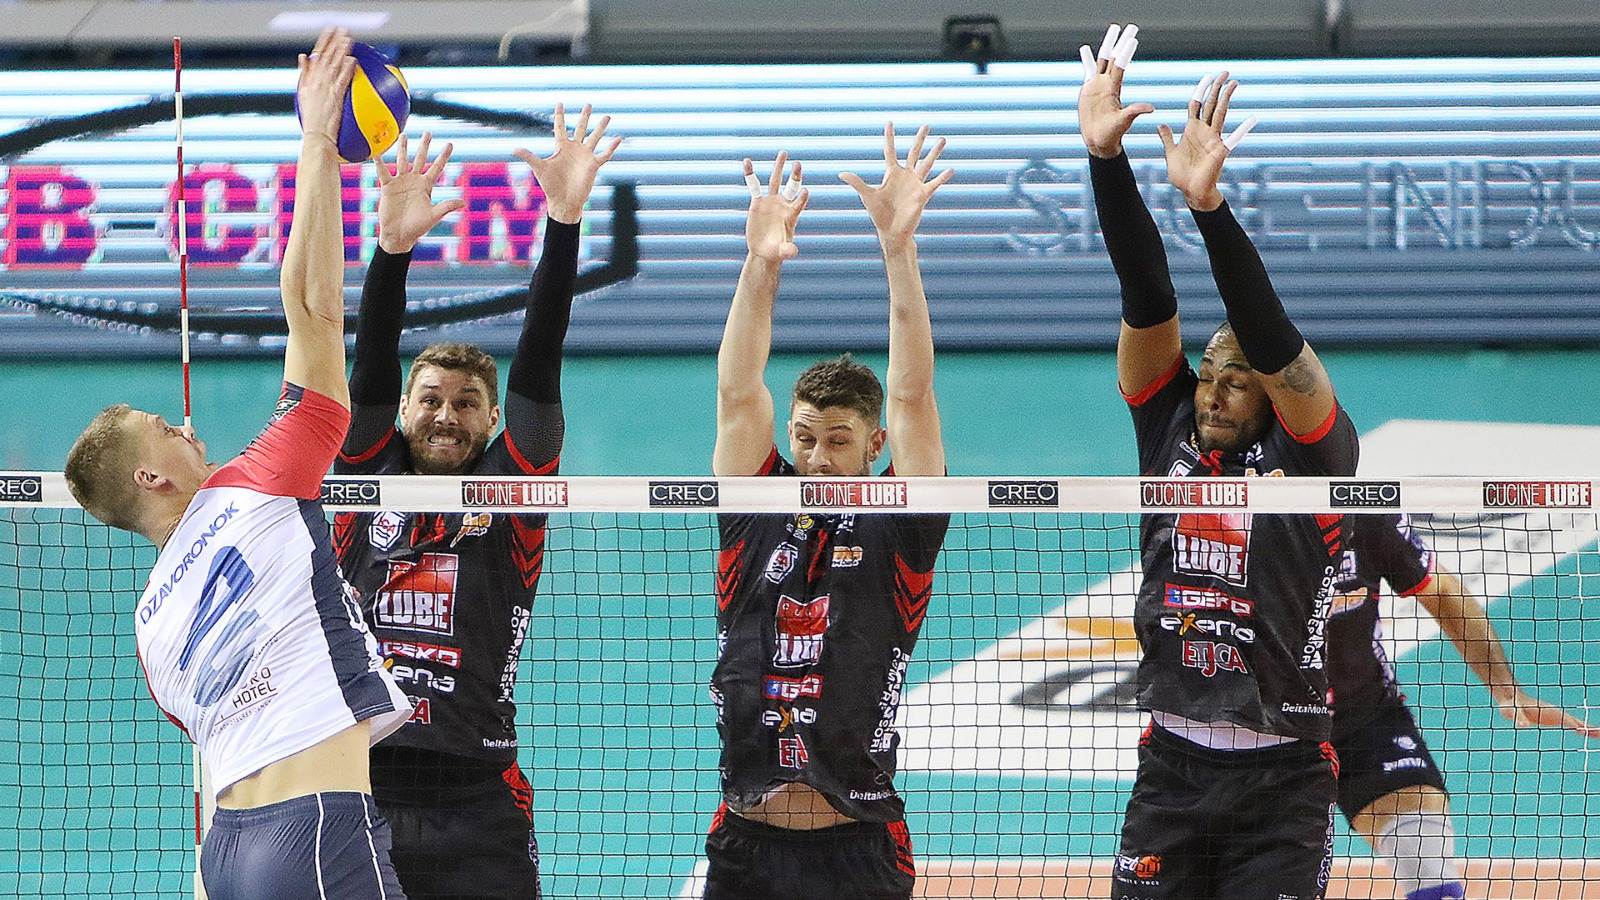 Lube alle Final Four di Coppa Italia, sofferto 3-2 con Monza